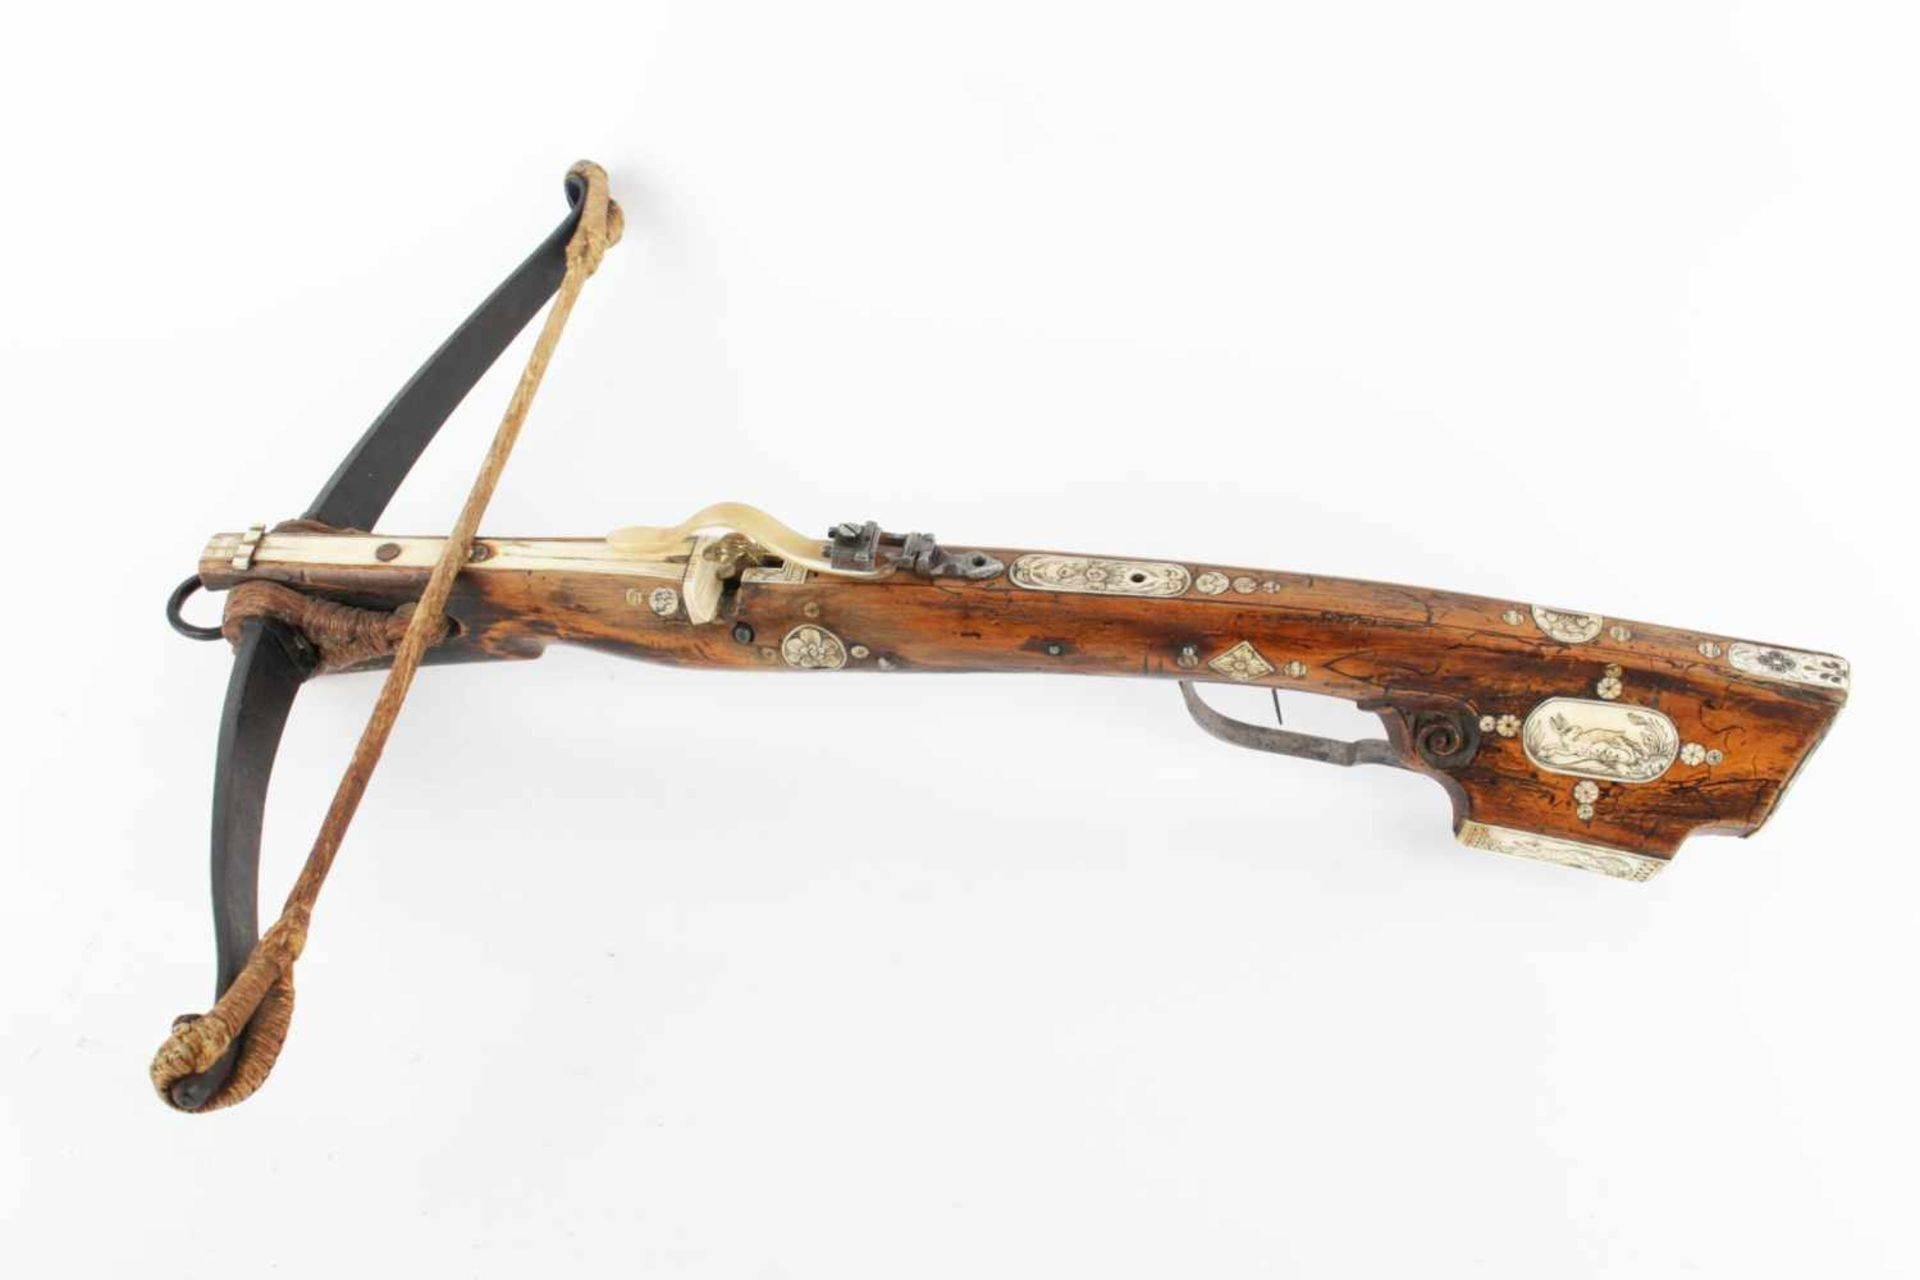 A German Hunting Crossbow Probably Germany, the end of the 17th century, steel, iron, wood, hemp